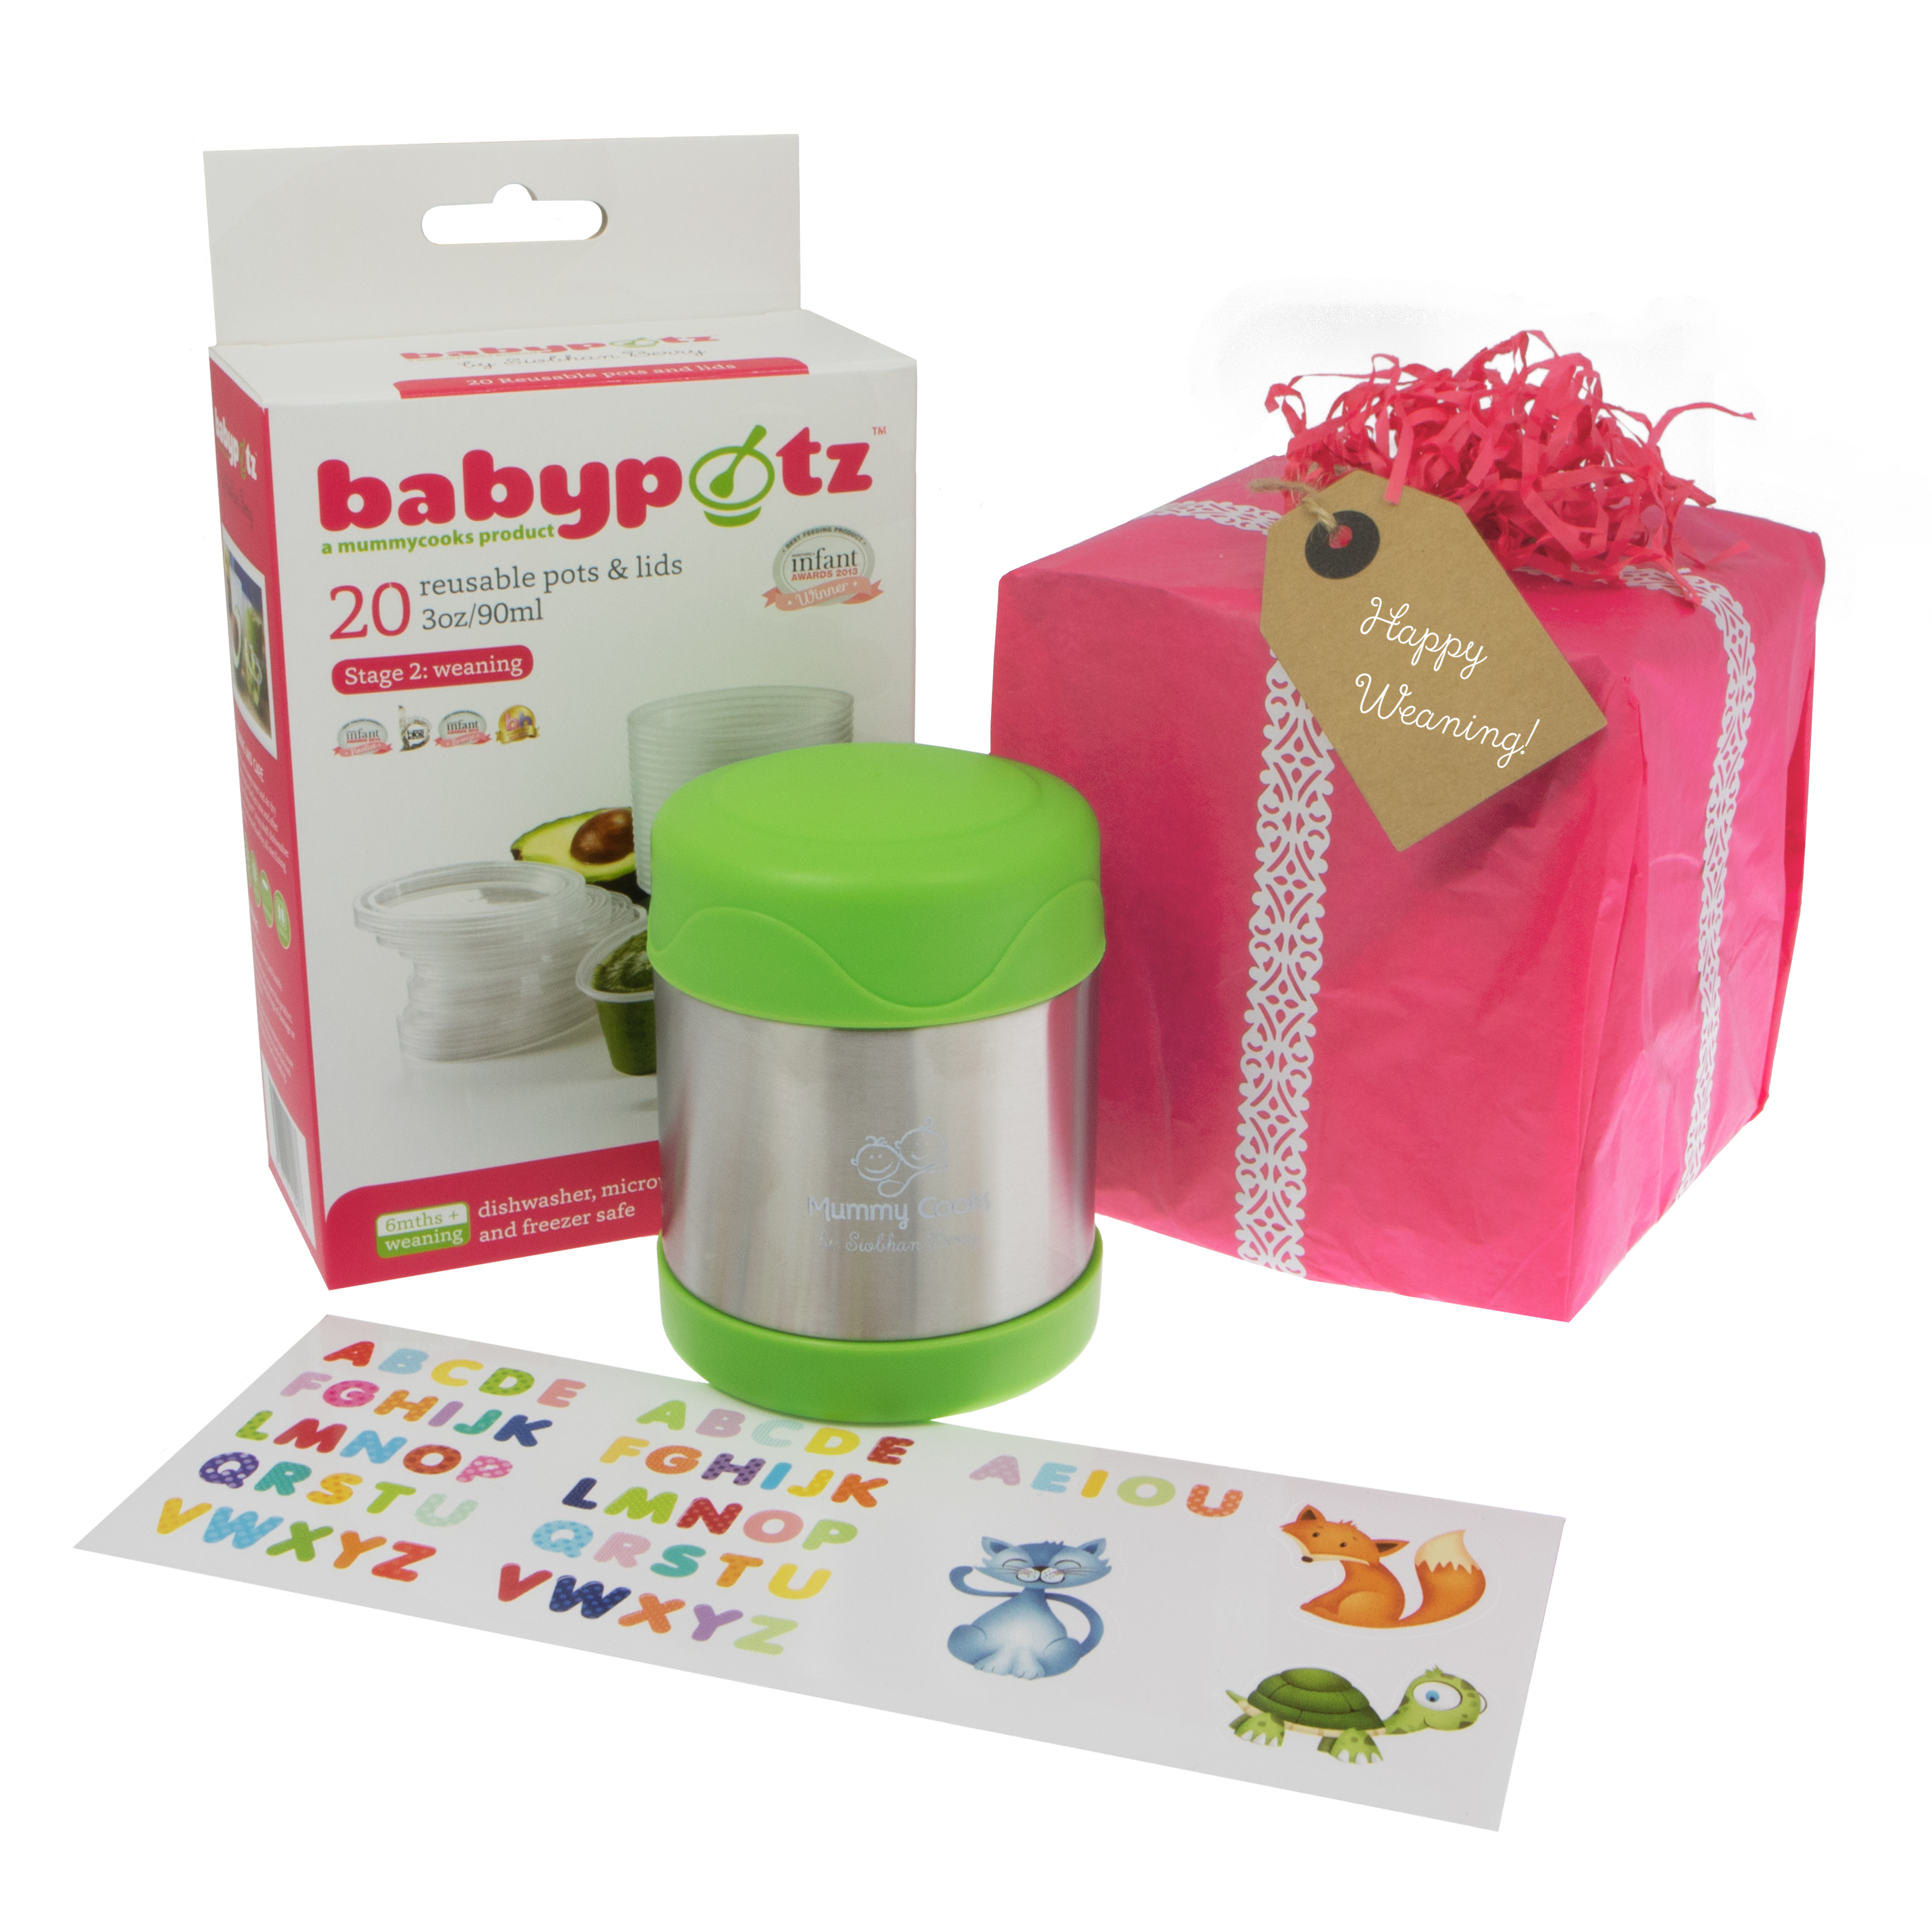 Mummy Cooks: 6month+weaning gift set